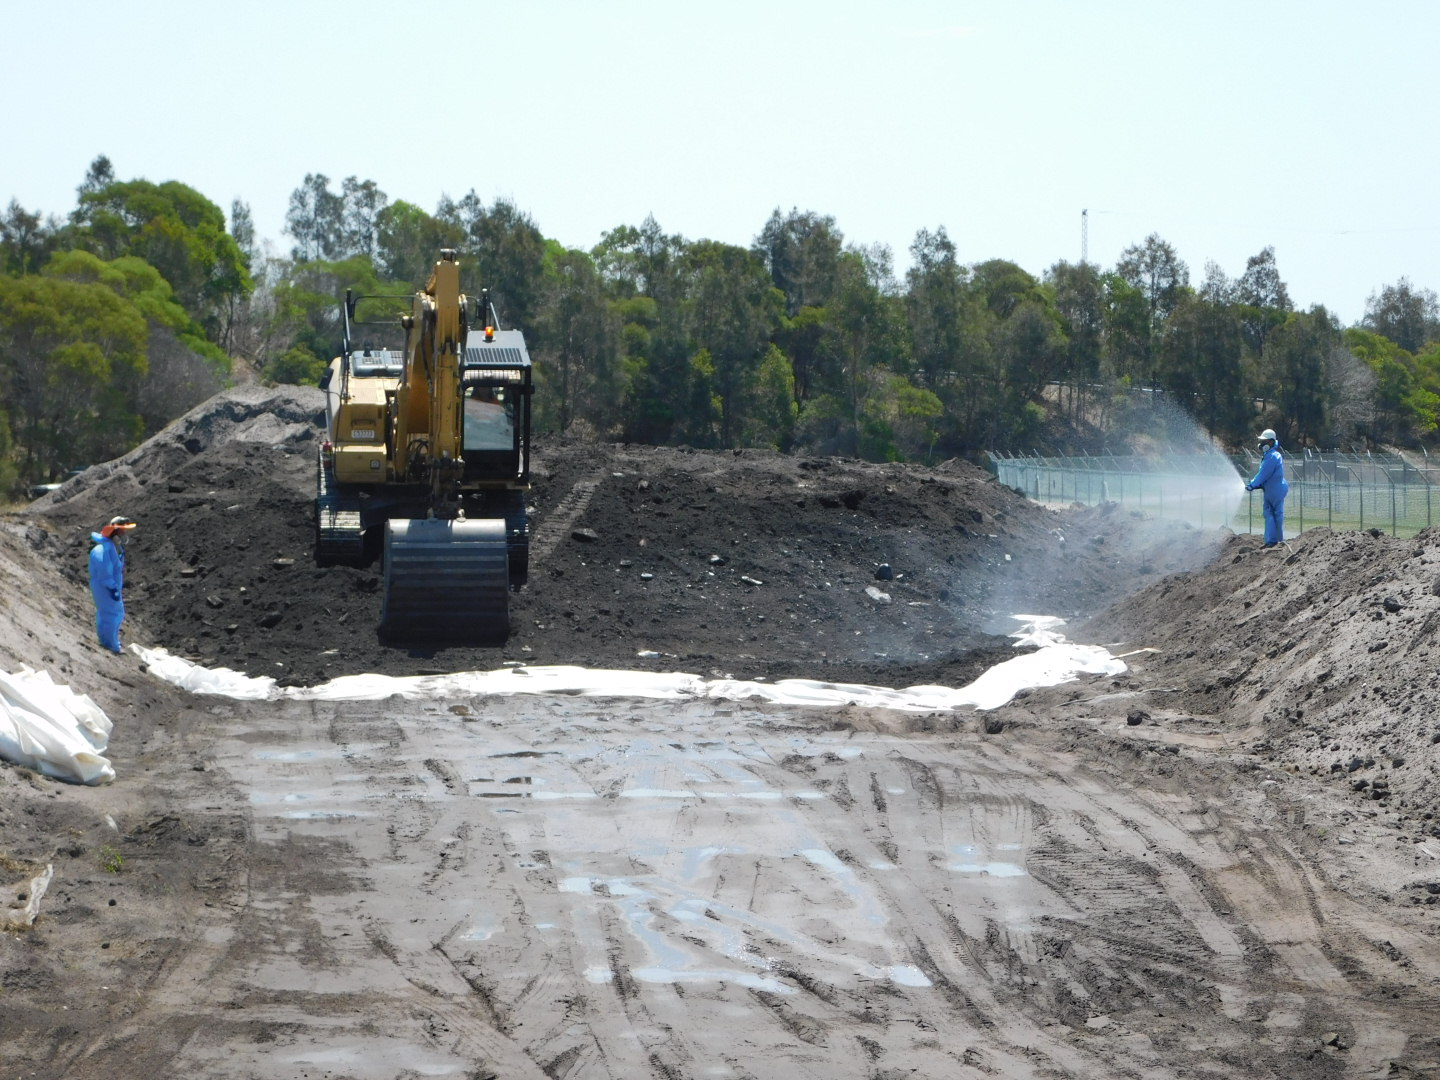 66c452 b5352cbc194a4c6bb6953ace21272480~mv2 - Case study 23000 cubic meters asbestos impacted soil removal .